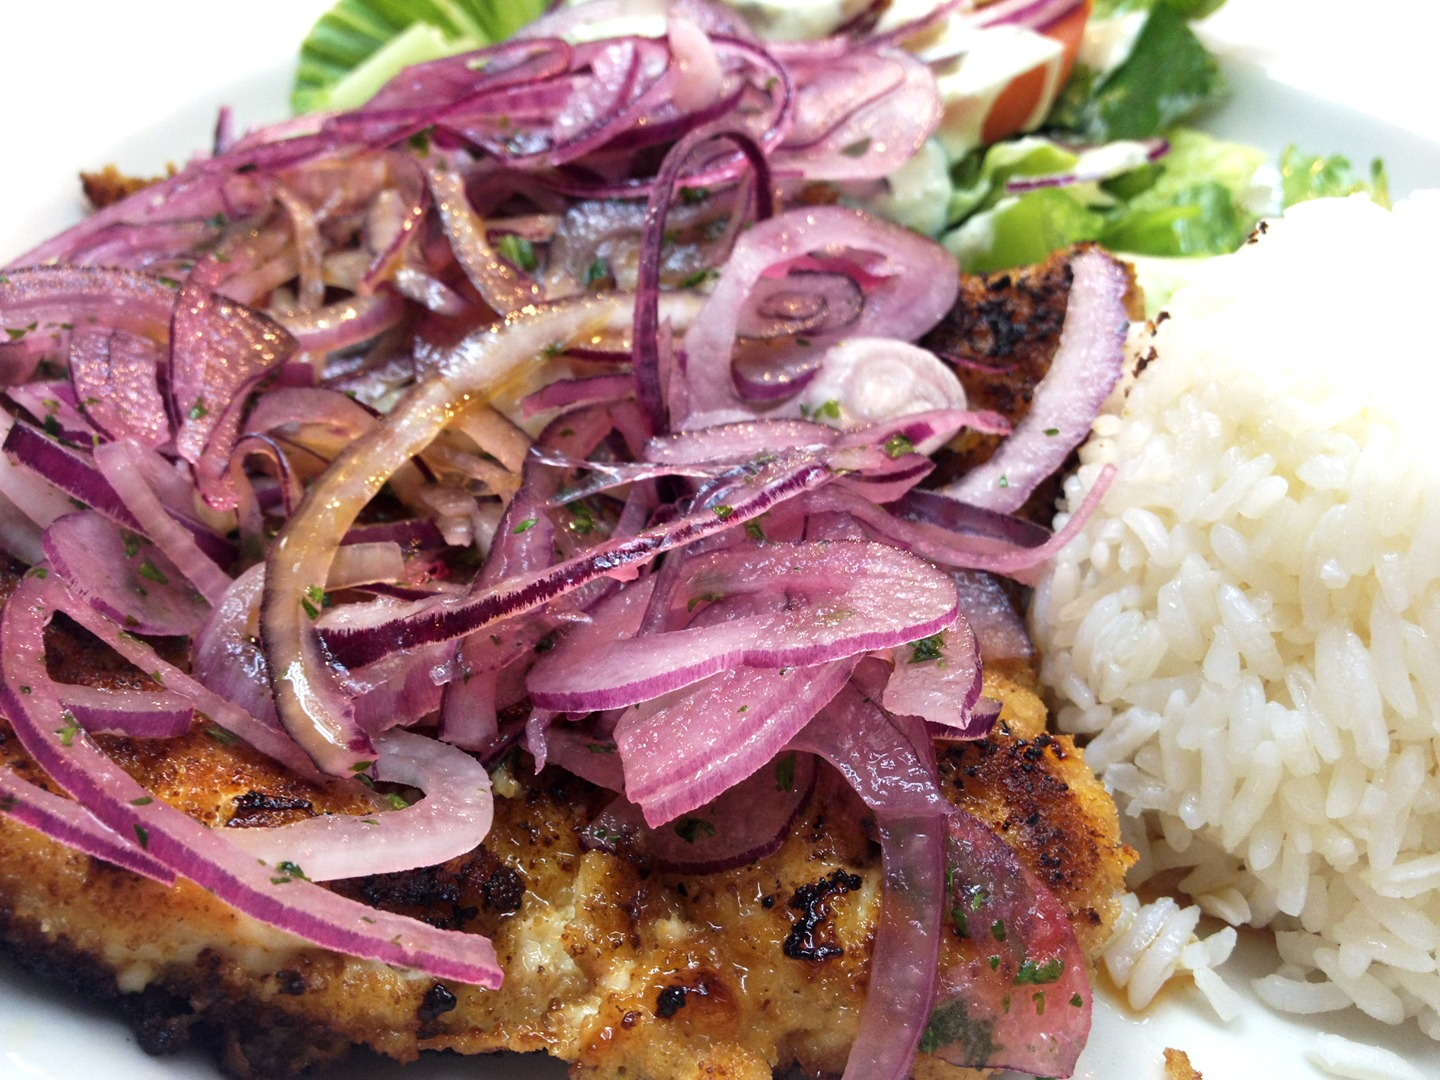 Grilled fish topped with strings of red onions and a side of white rice and salad.